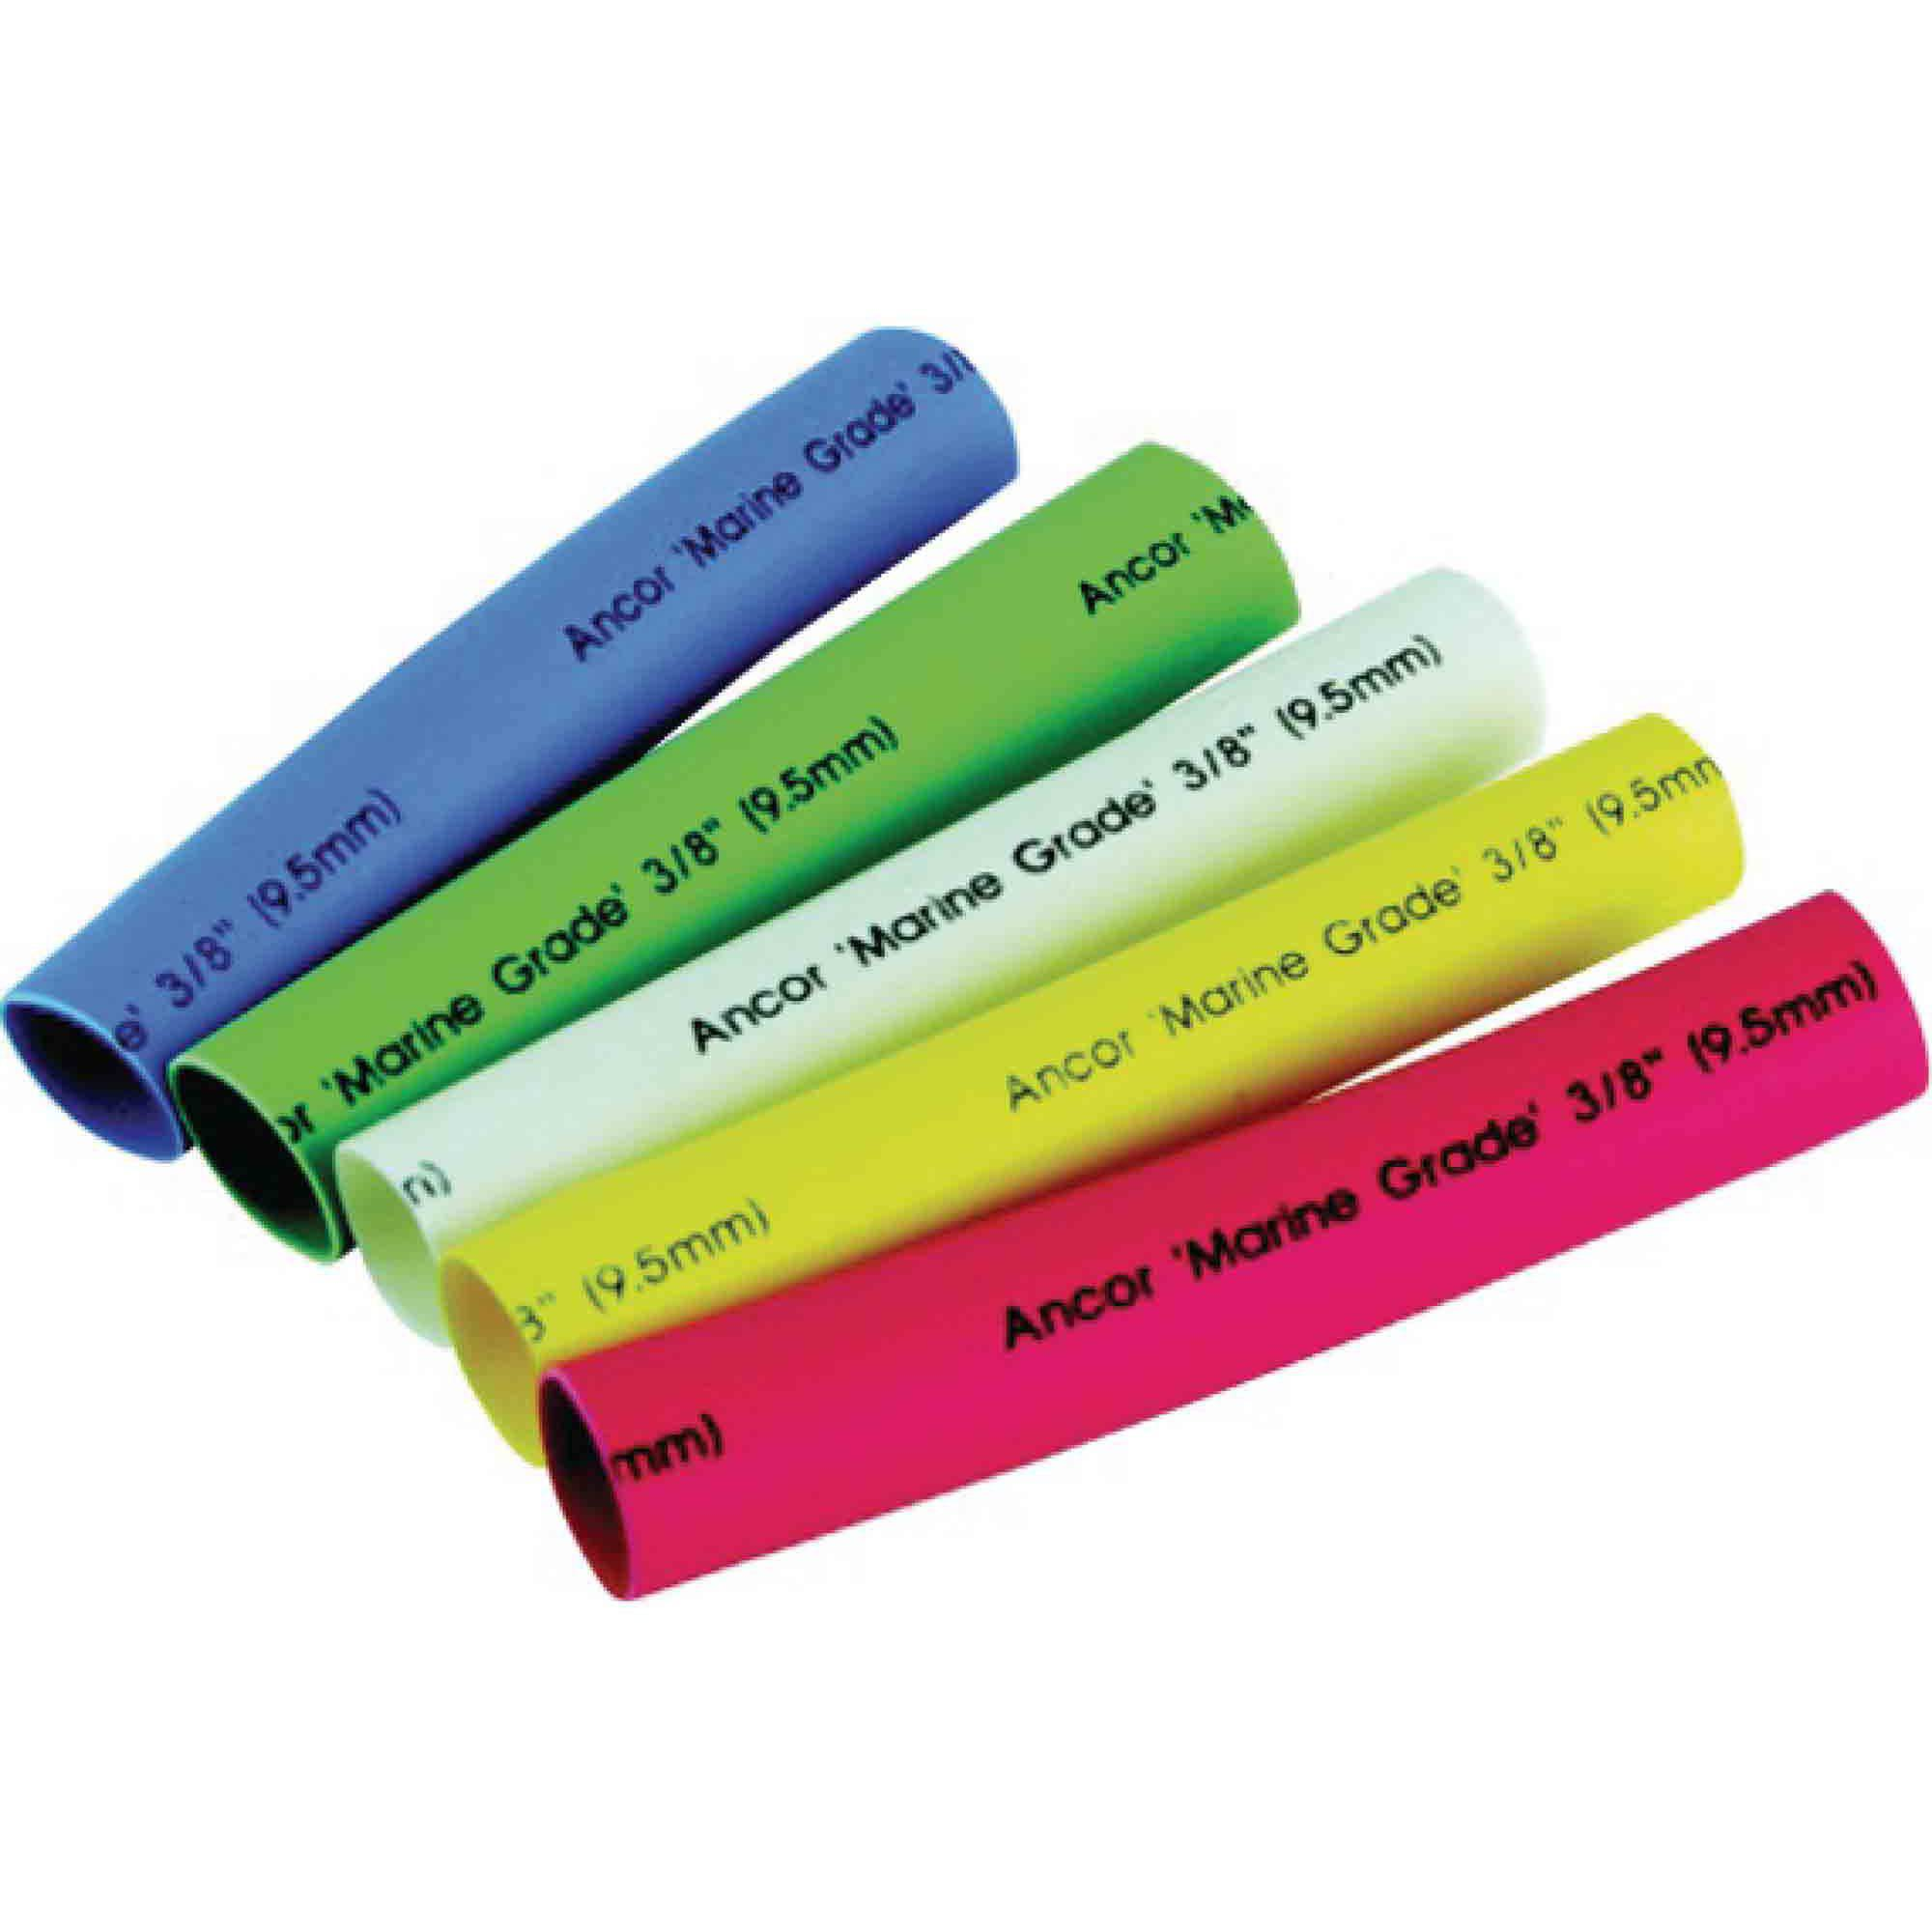 "Ancor Adhesive Lined Heat Shrink Tubing Assorted, 3/8' x 3"", Black, Green, Red, White, Yellow"